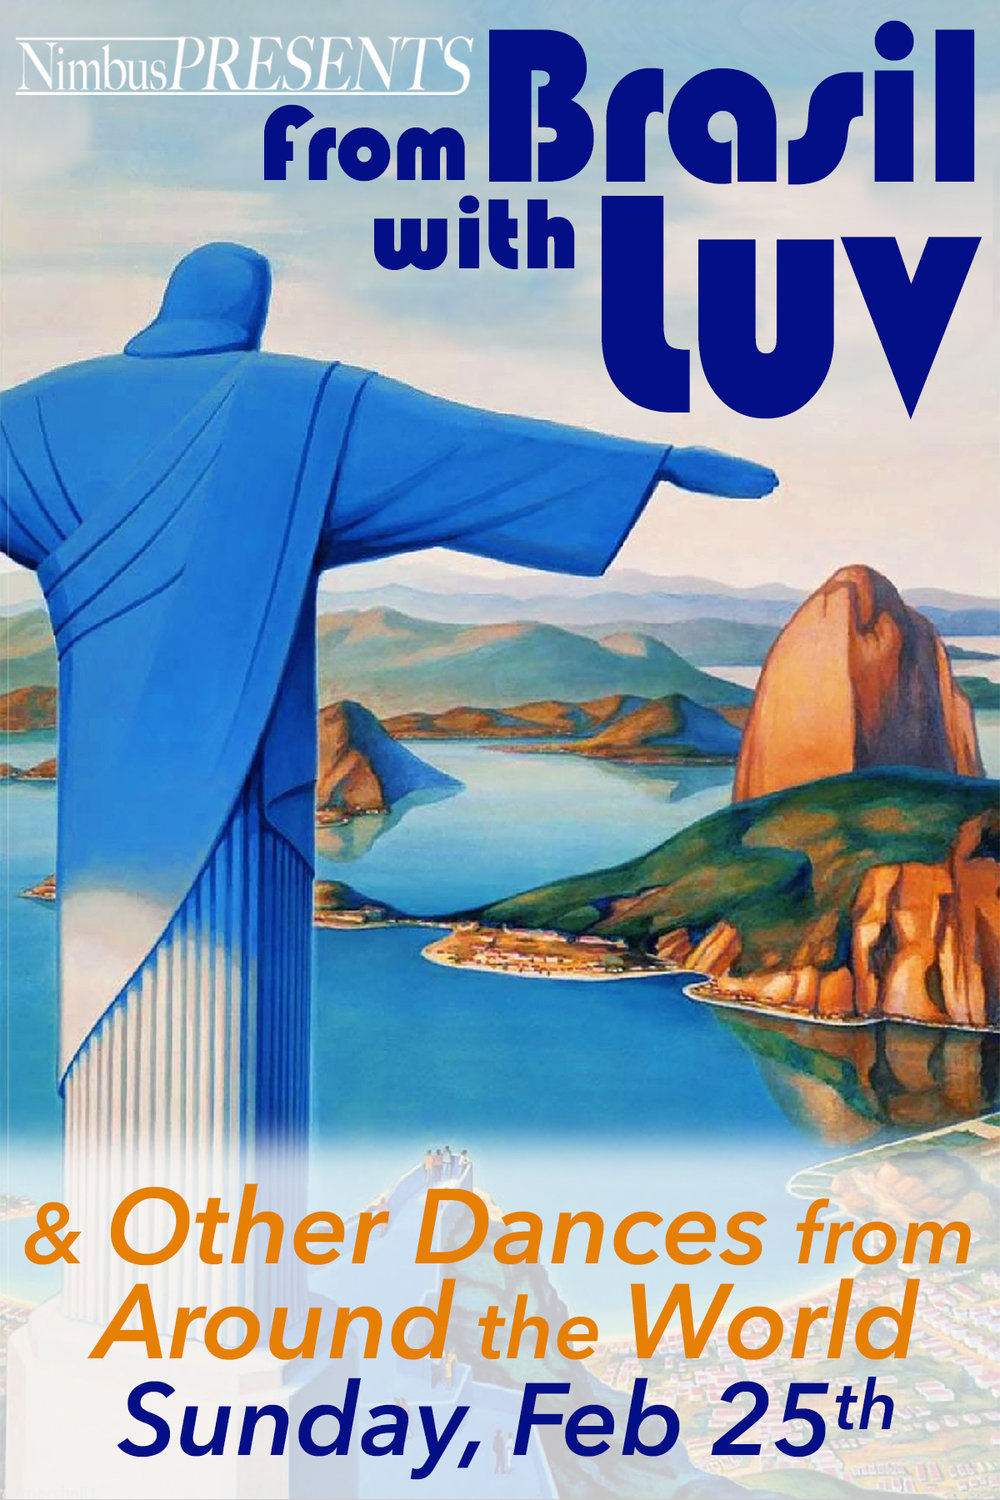 From Brasil with Luv Postcard.jpg